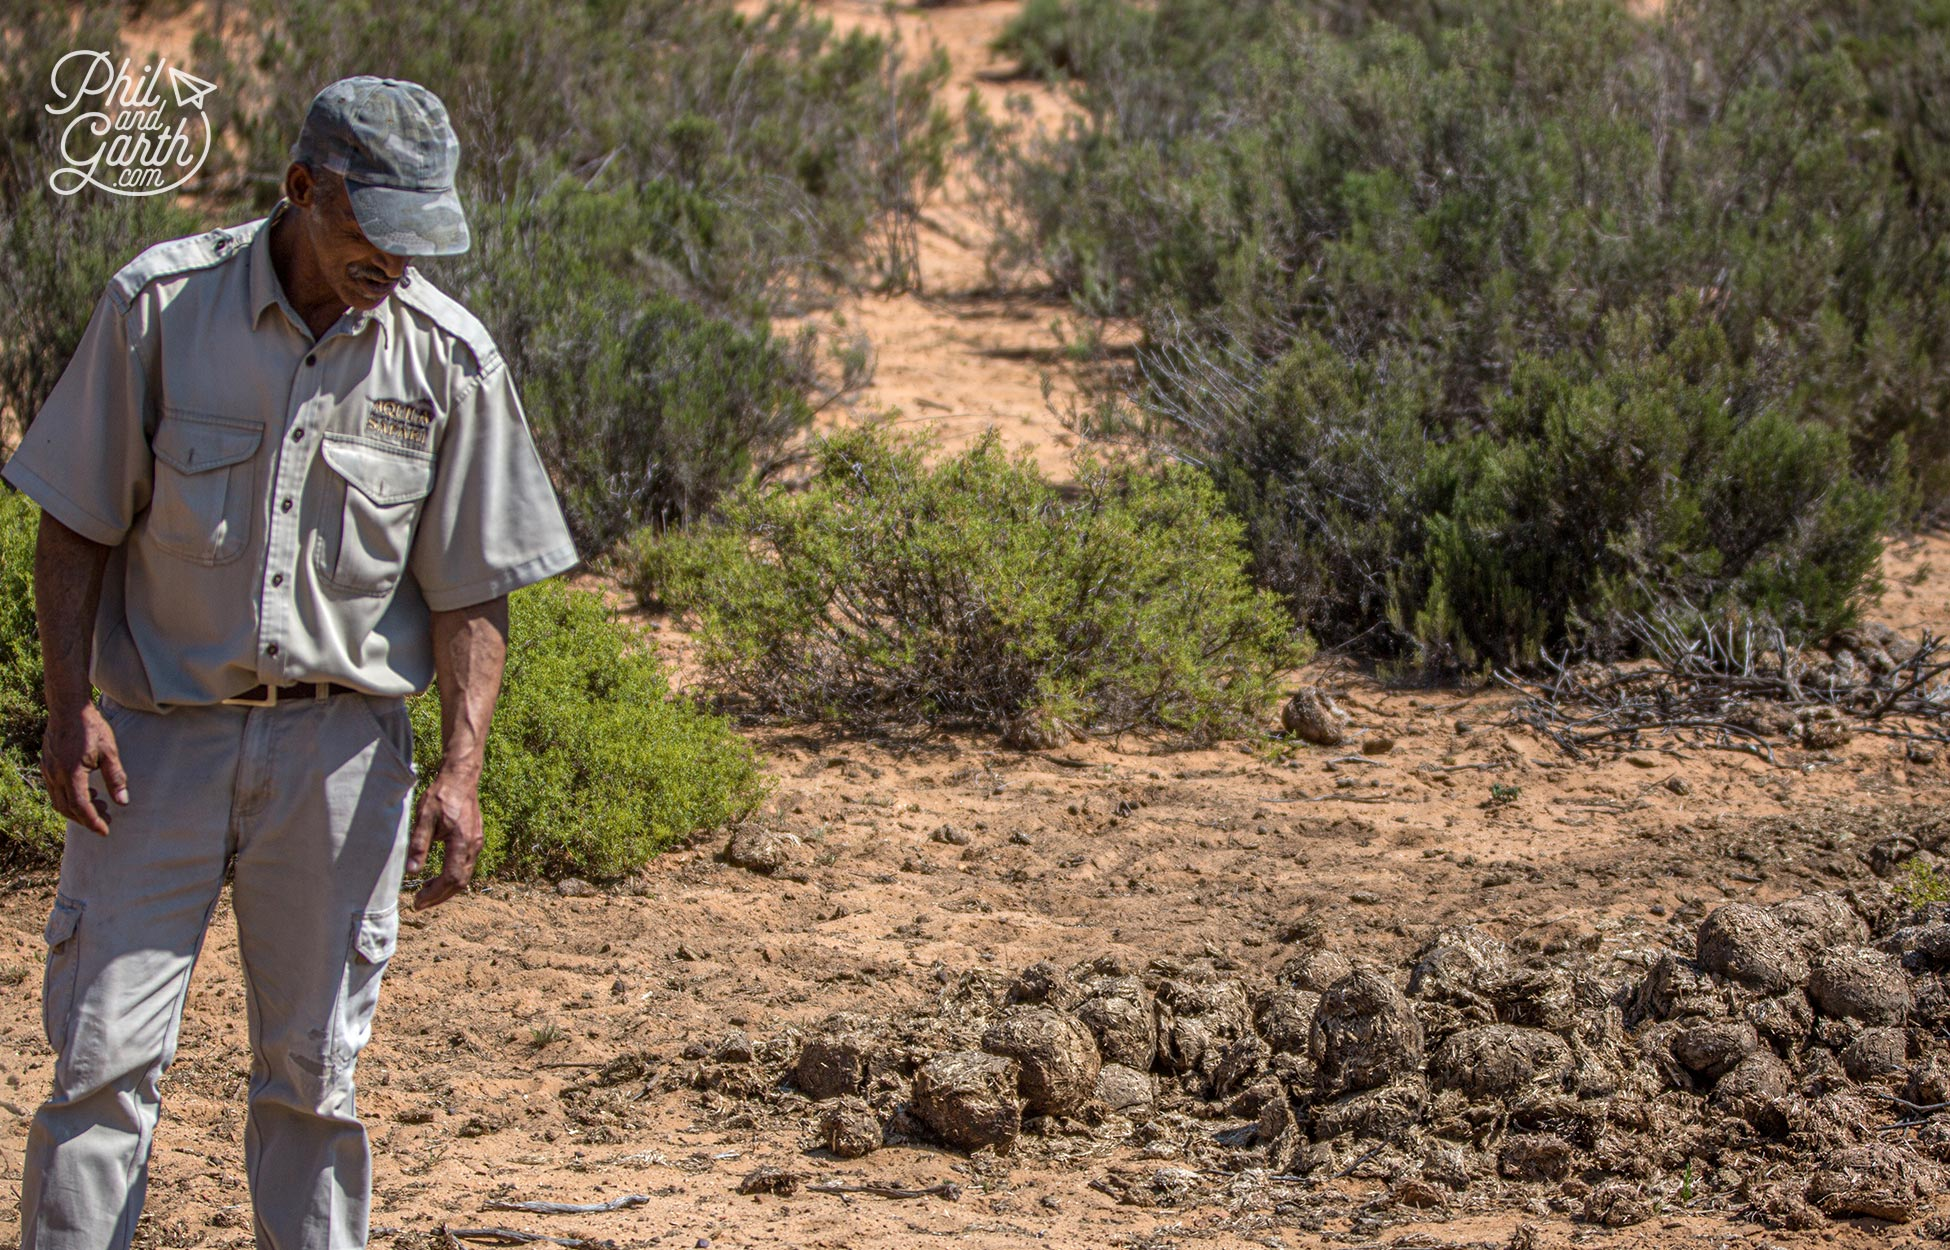 Our guide examines some dung